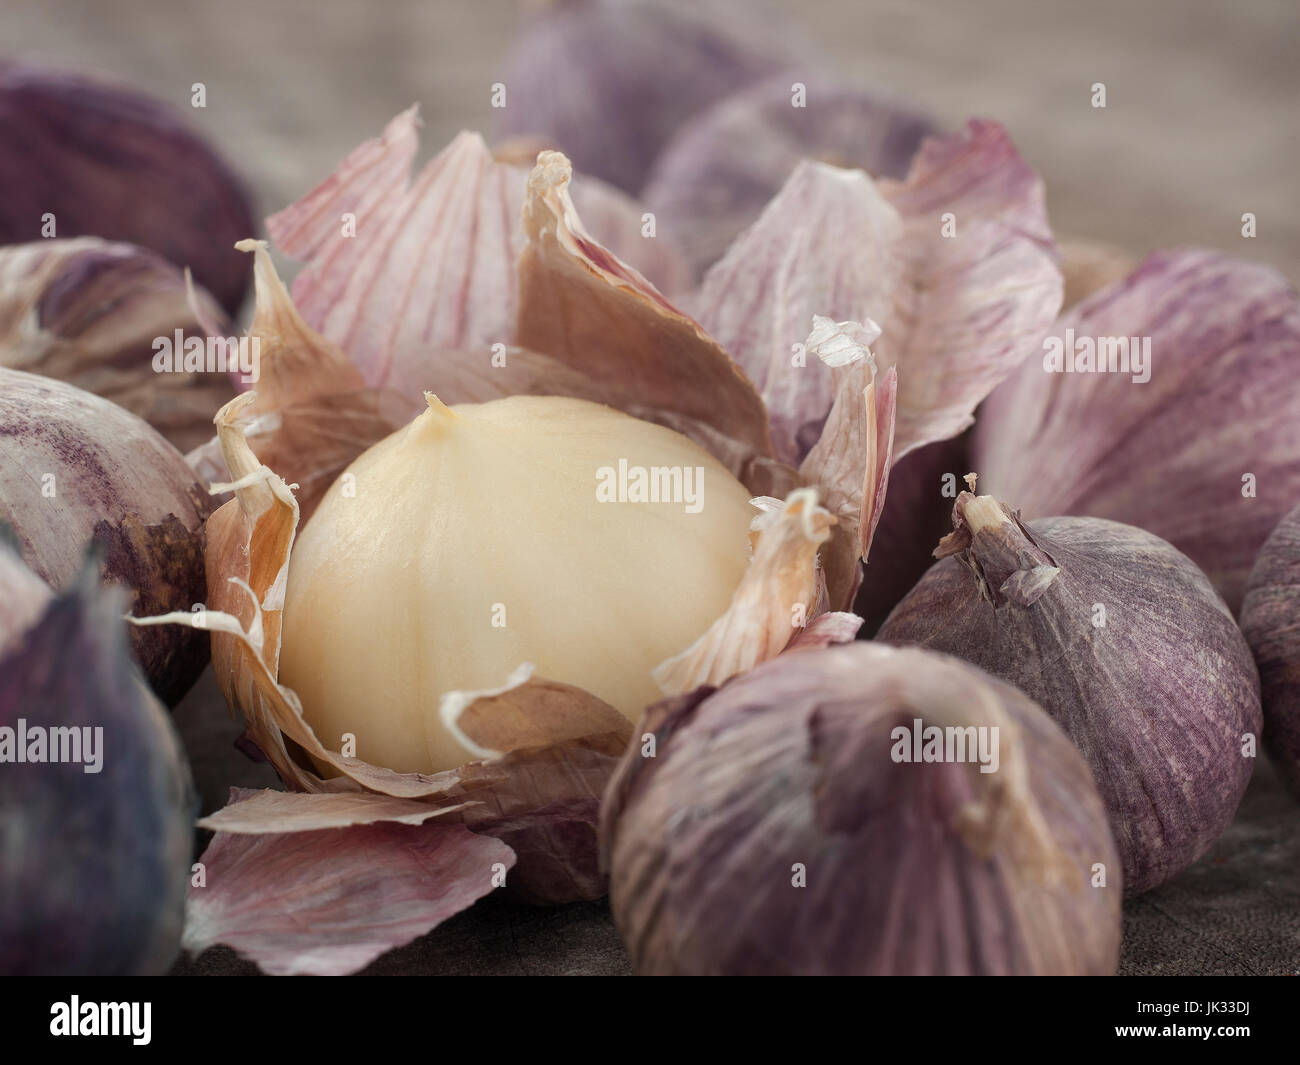 still life fine art of Single Bulb form of Elephant Garlic on wooden background - Stock Image